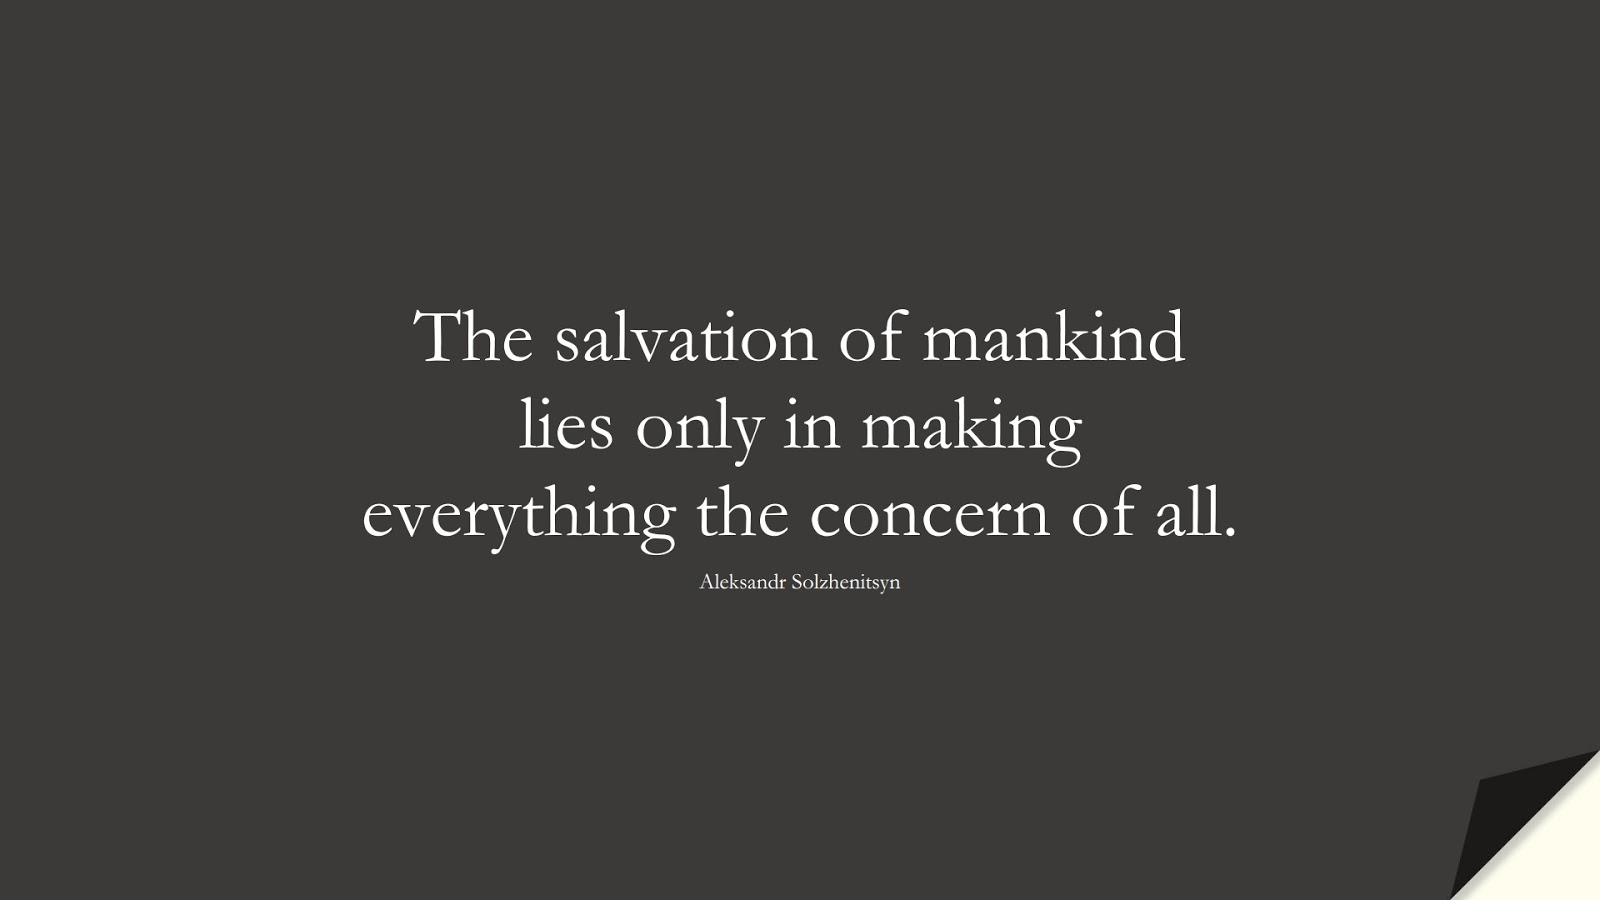 The salvation of mankind lies only in making everything the concern of all. (Aleksandr Solzhenitsyn);  #HumanityQuotes